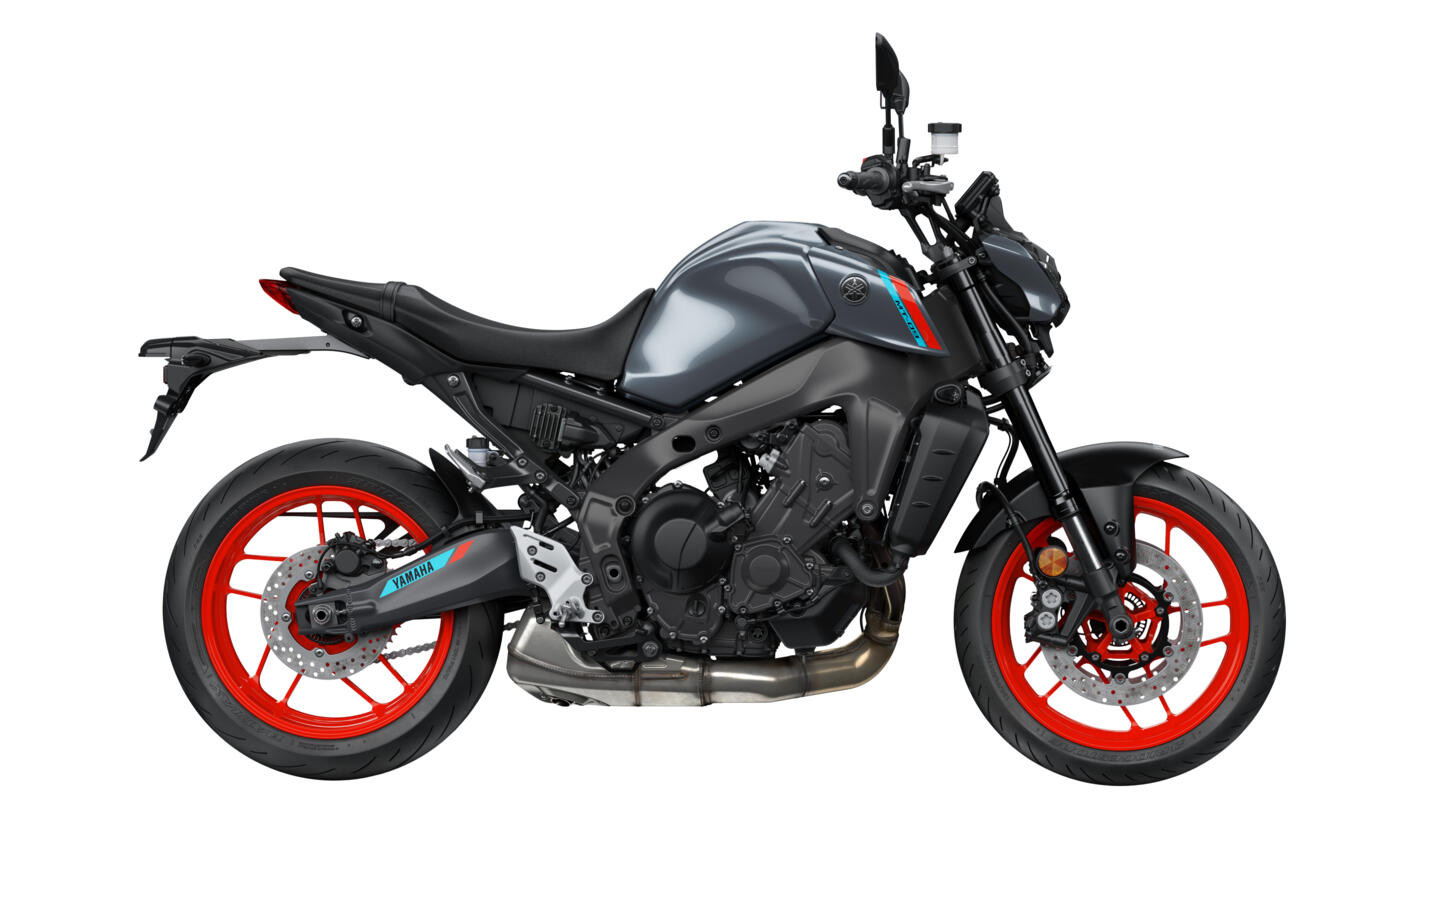 Yamaha MT-09 2021 in Storm Fluo